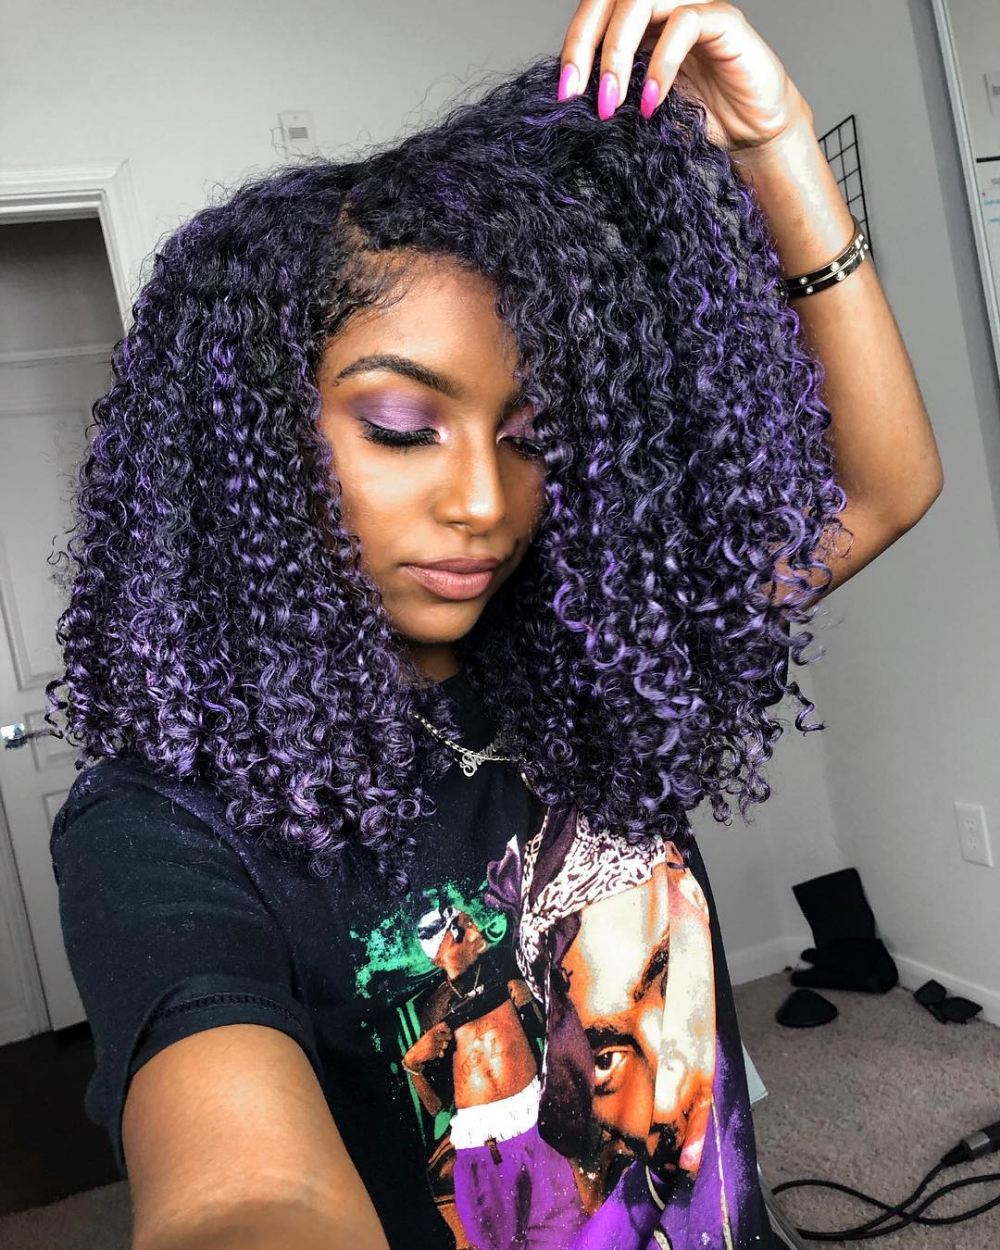 I Ve Always Wanted Purple Hair Inspired By The One And Only Justineskye Hairpaintwax H Natural Hair Styles Purple Hair Black Girl Purple Natural Hair